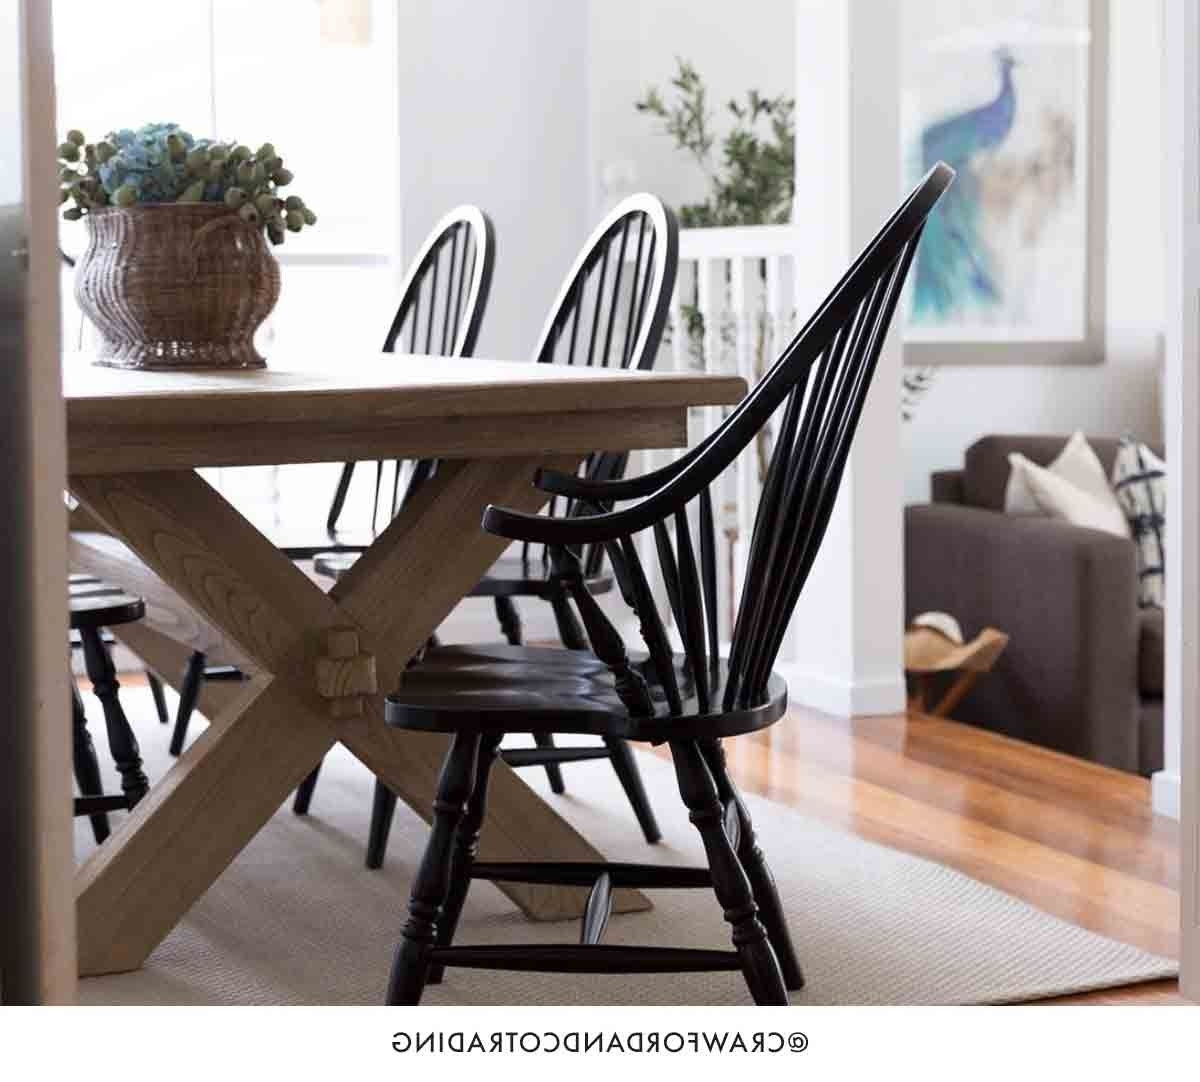 25 Best Collection Of Toscana Dining Tables In 2017 Seadrift Toscana Extending Dining Tables (View 21 of 25)